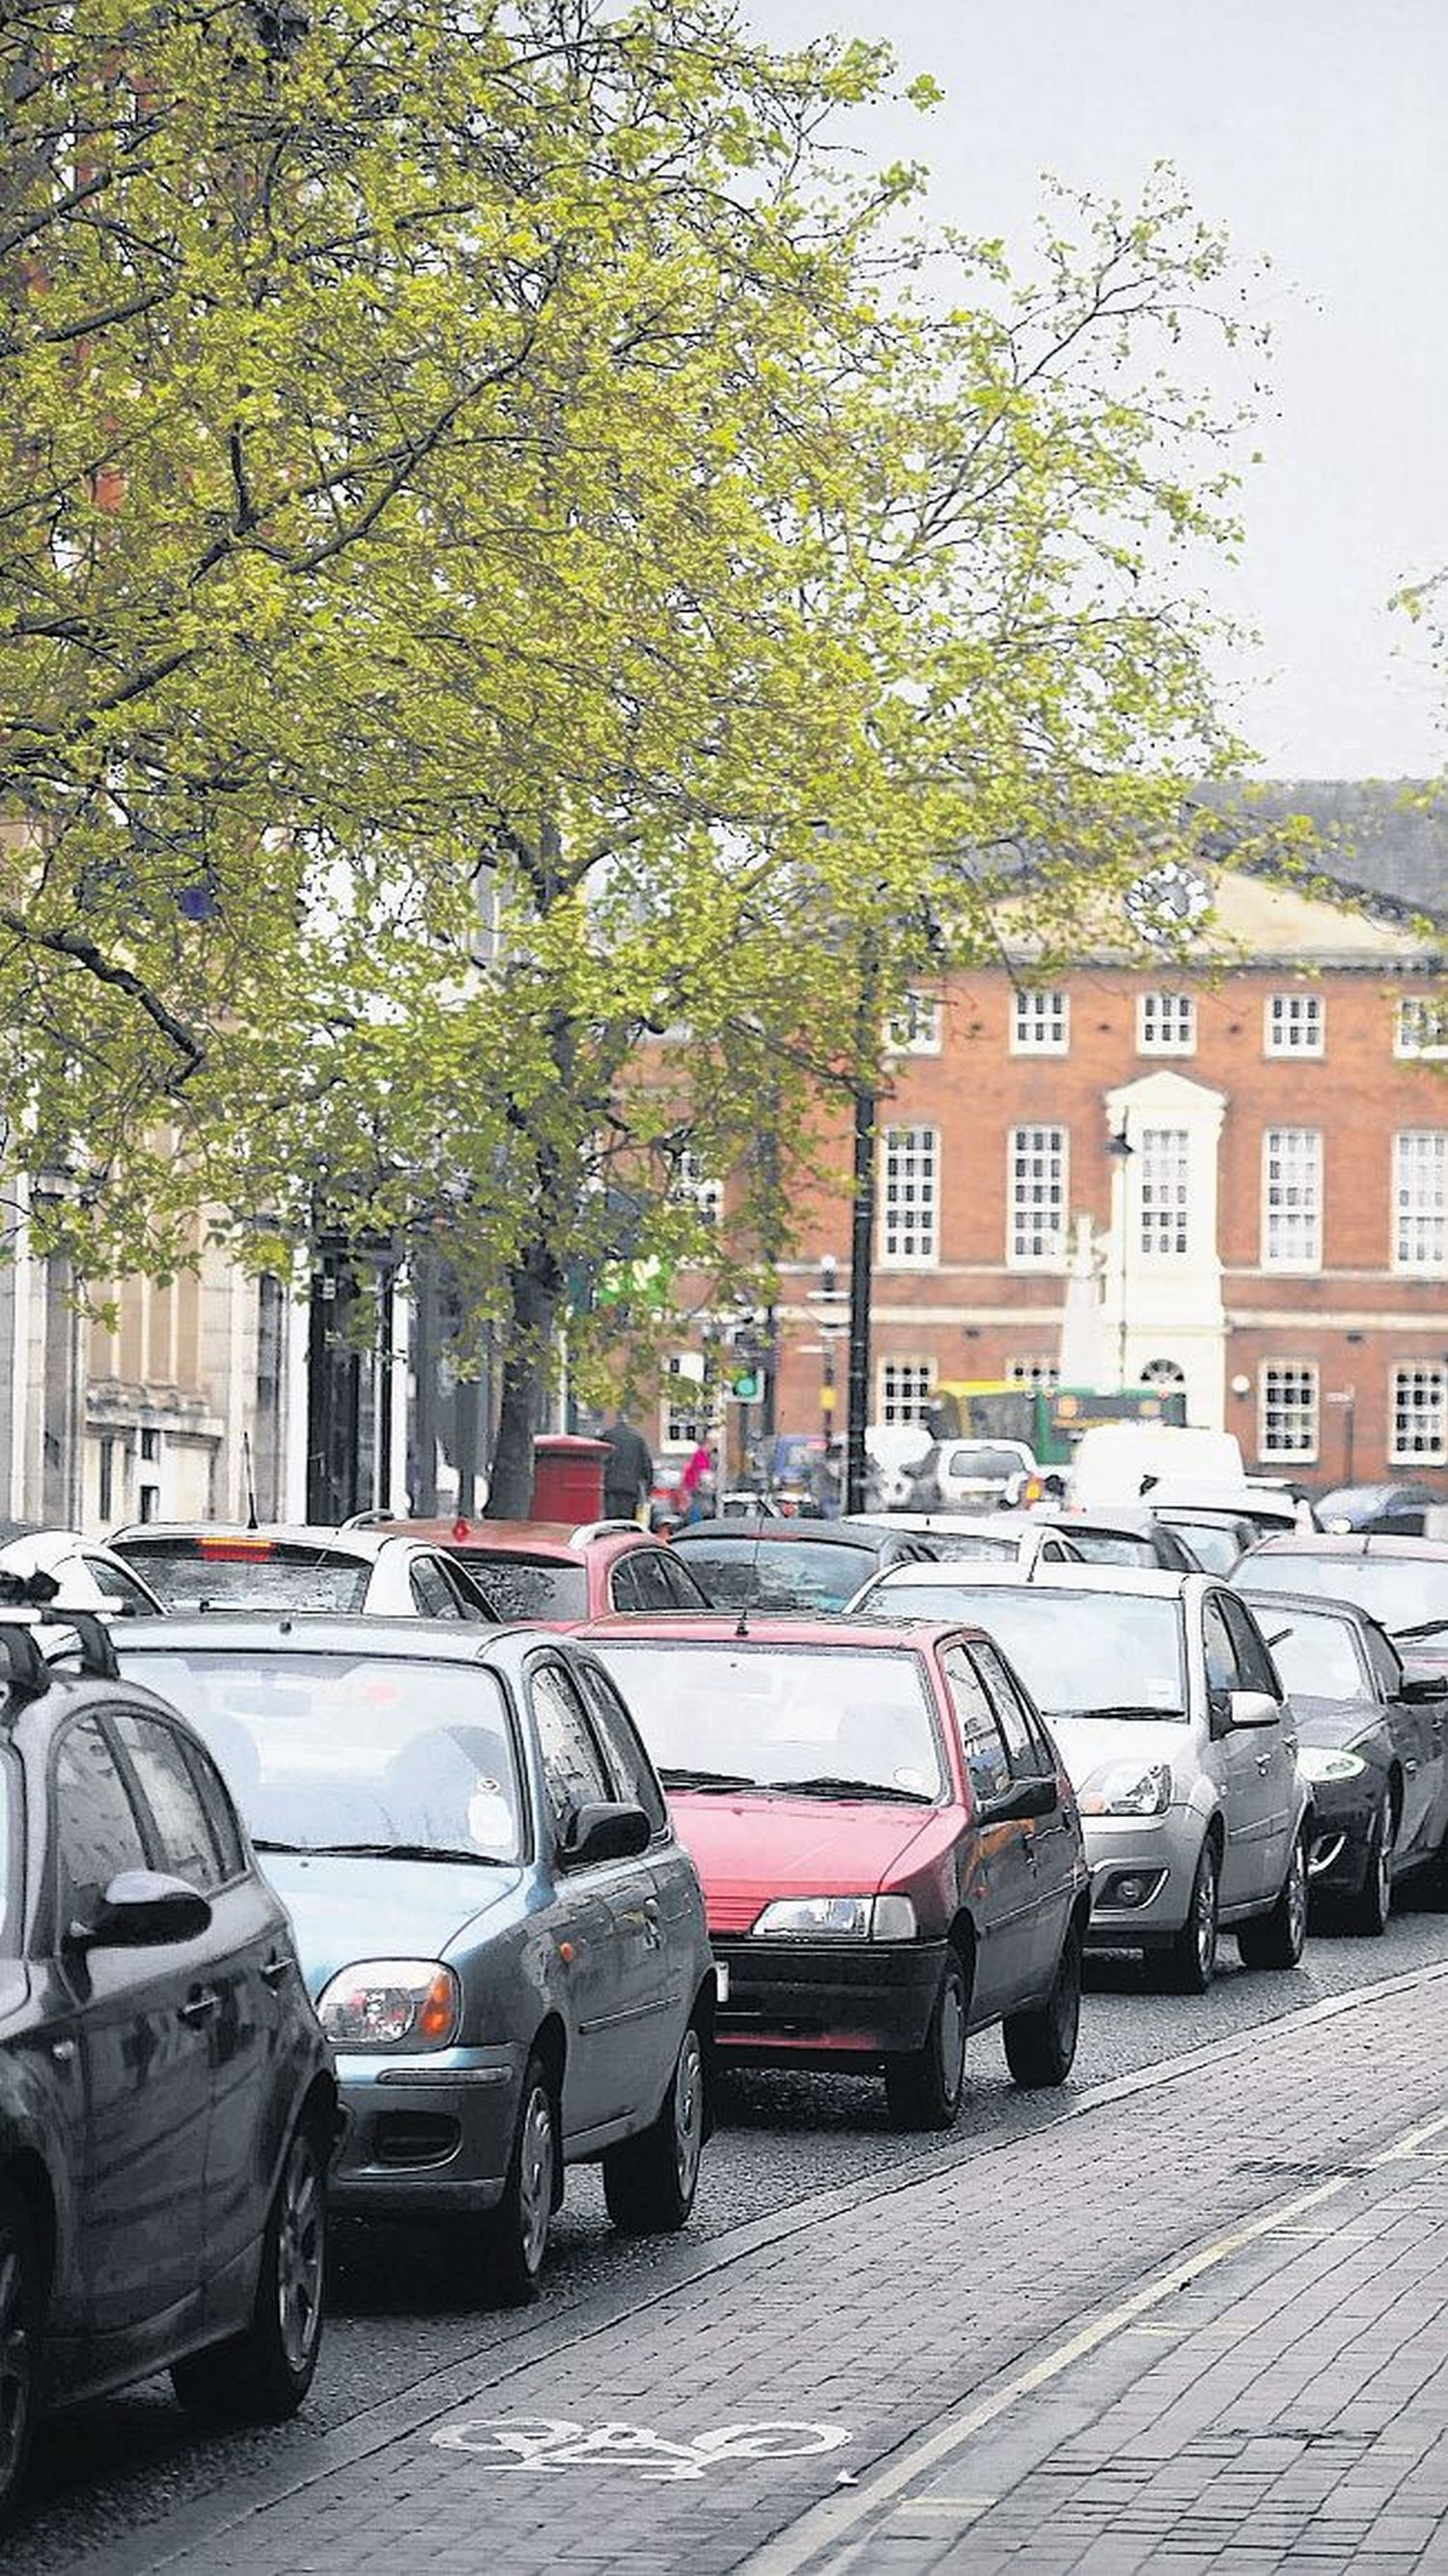 Disruption and anger at traffic gridlock in Taunton